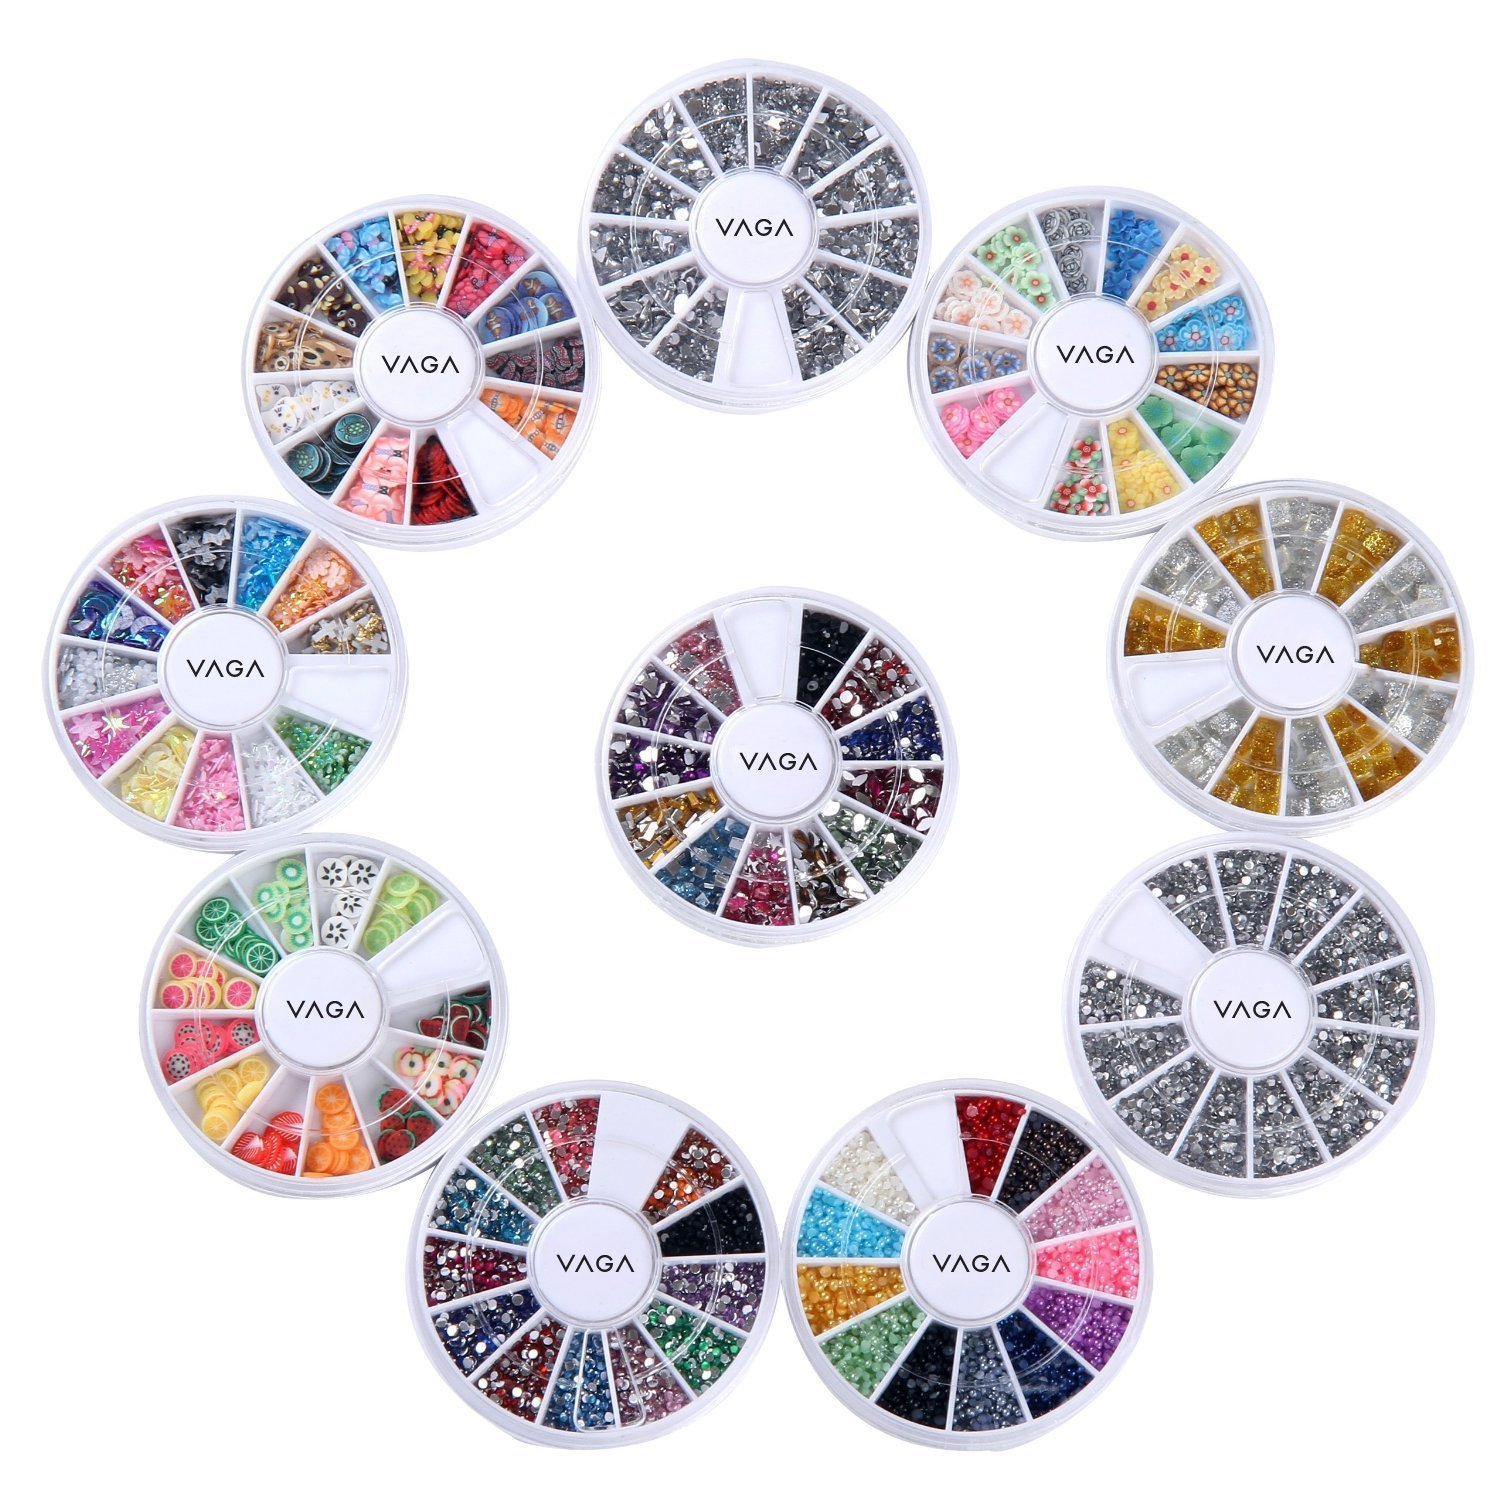 Amazon.com  Nail Decorations By Cheeky- 10 Nail Decoration Wheels of  Premium Manicure Nail Art Decorations in Many Different Colors and Shapes   Health ... 862fc9828b44